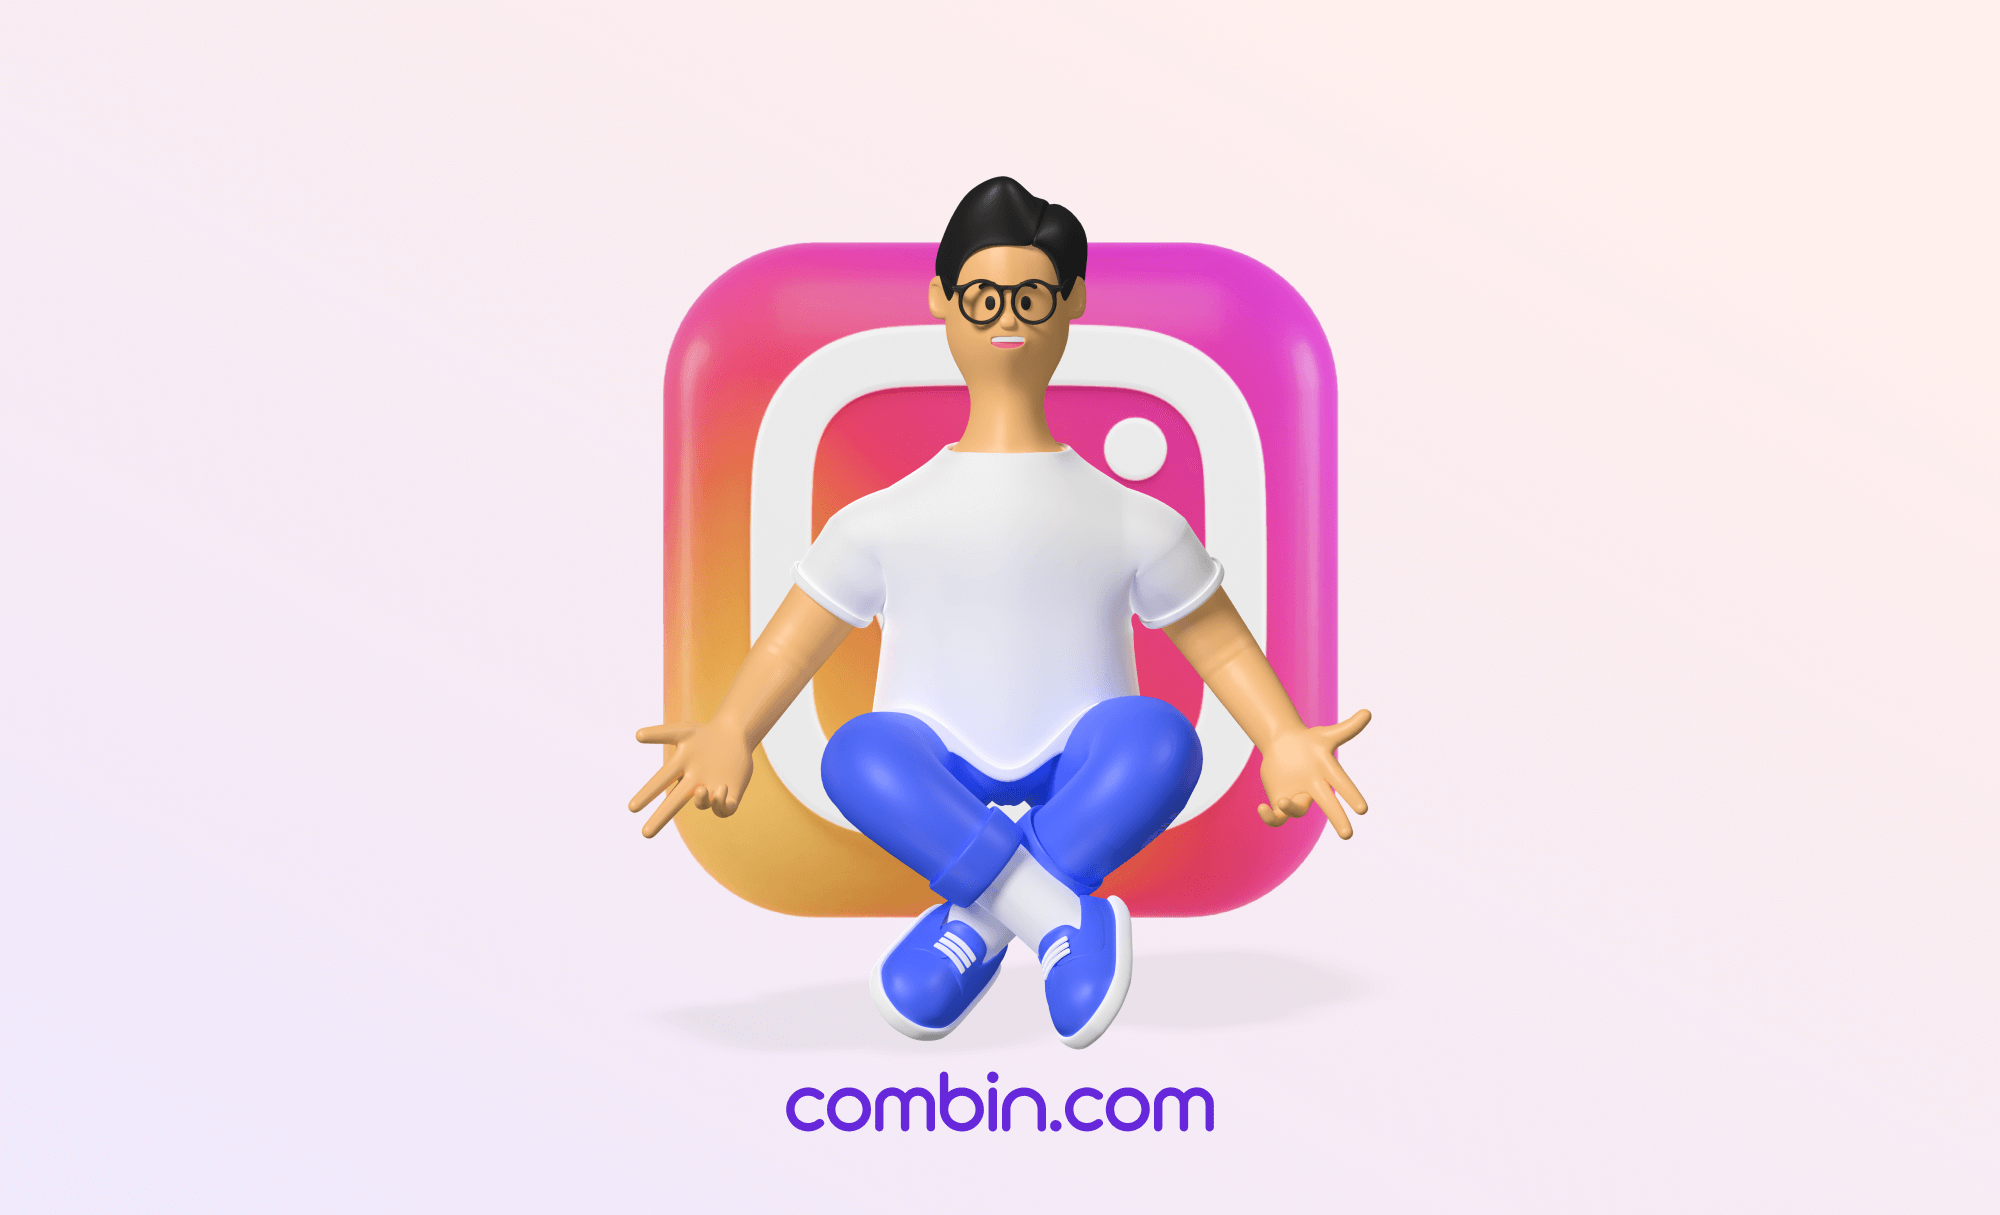 Instagram Down? 8 Ways to Save Customers and Stay Afloat